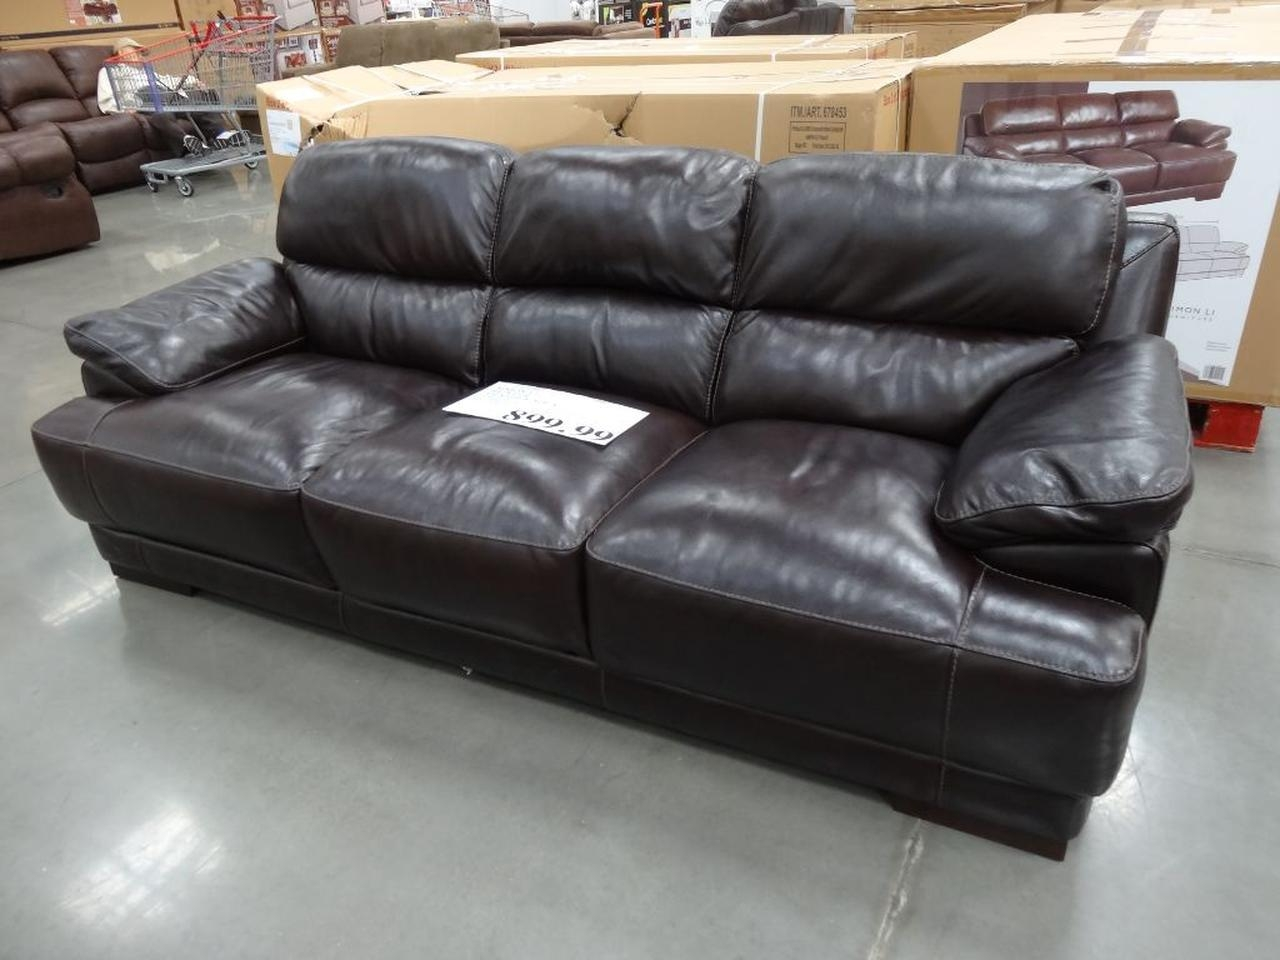 Furniture: Costco Sofa Bed | Target Futon | Euro Lounger Pertaining To Euro Lounger Sofa Beds (Image 15 of 20)